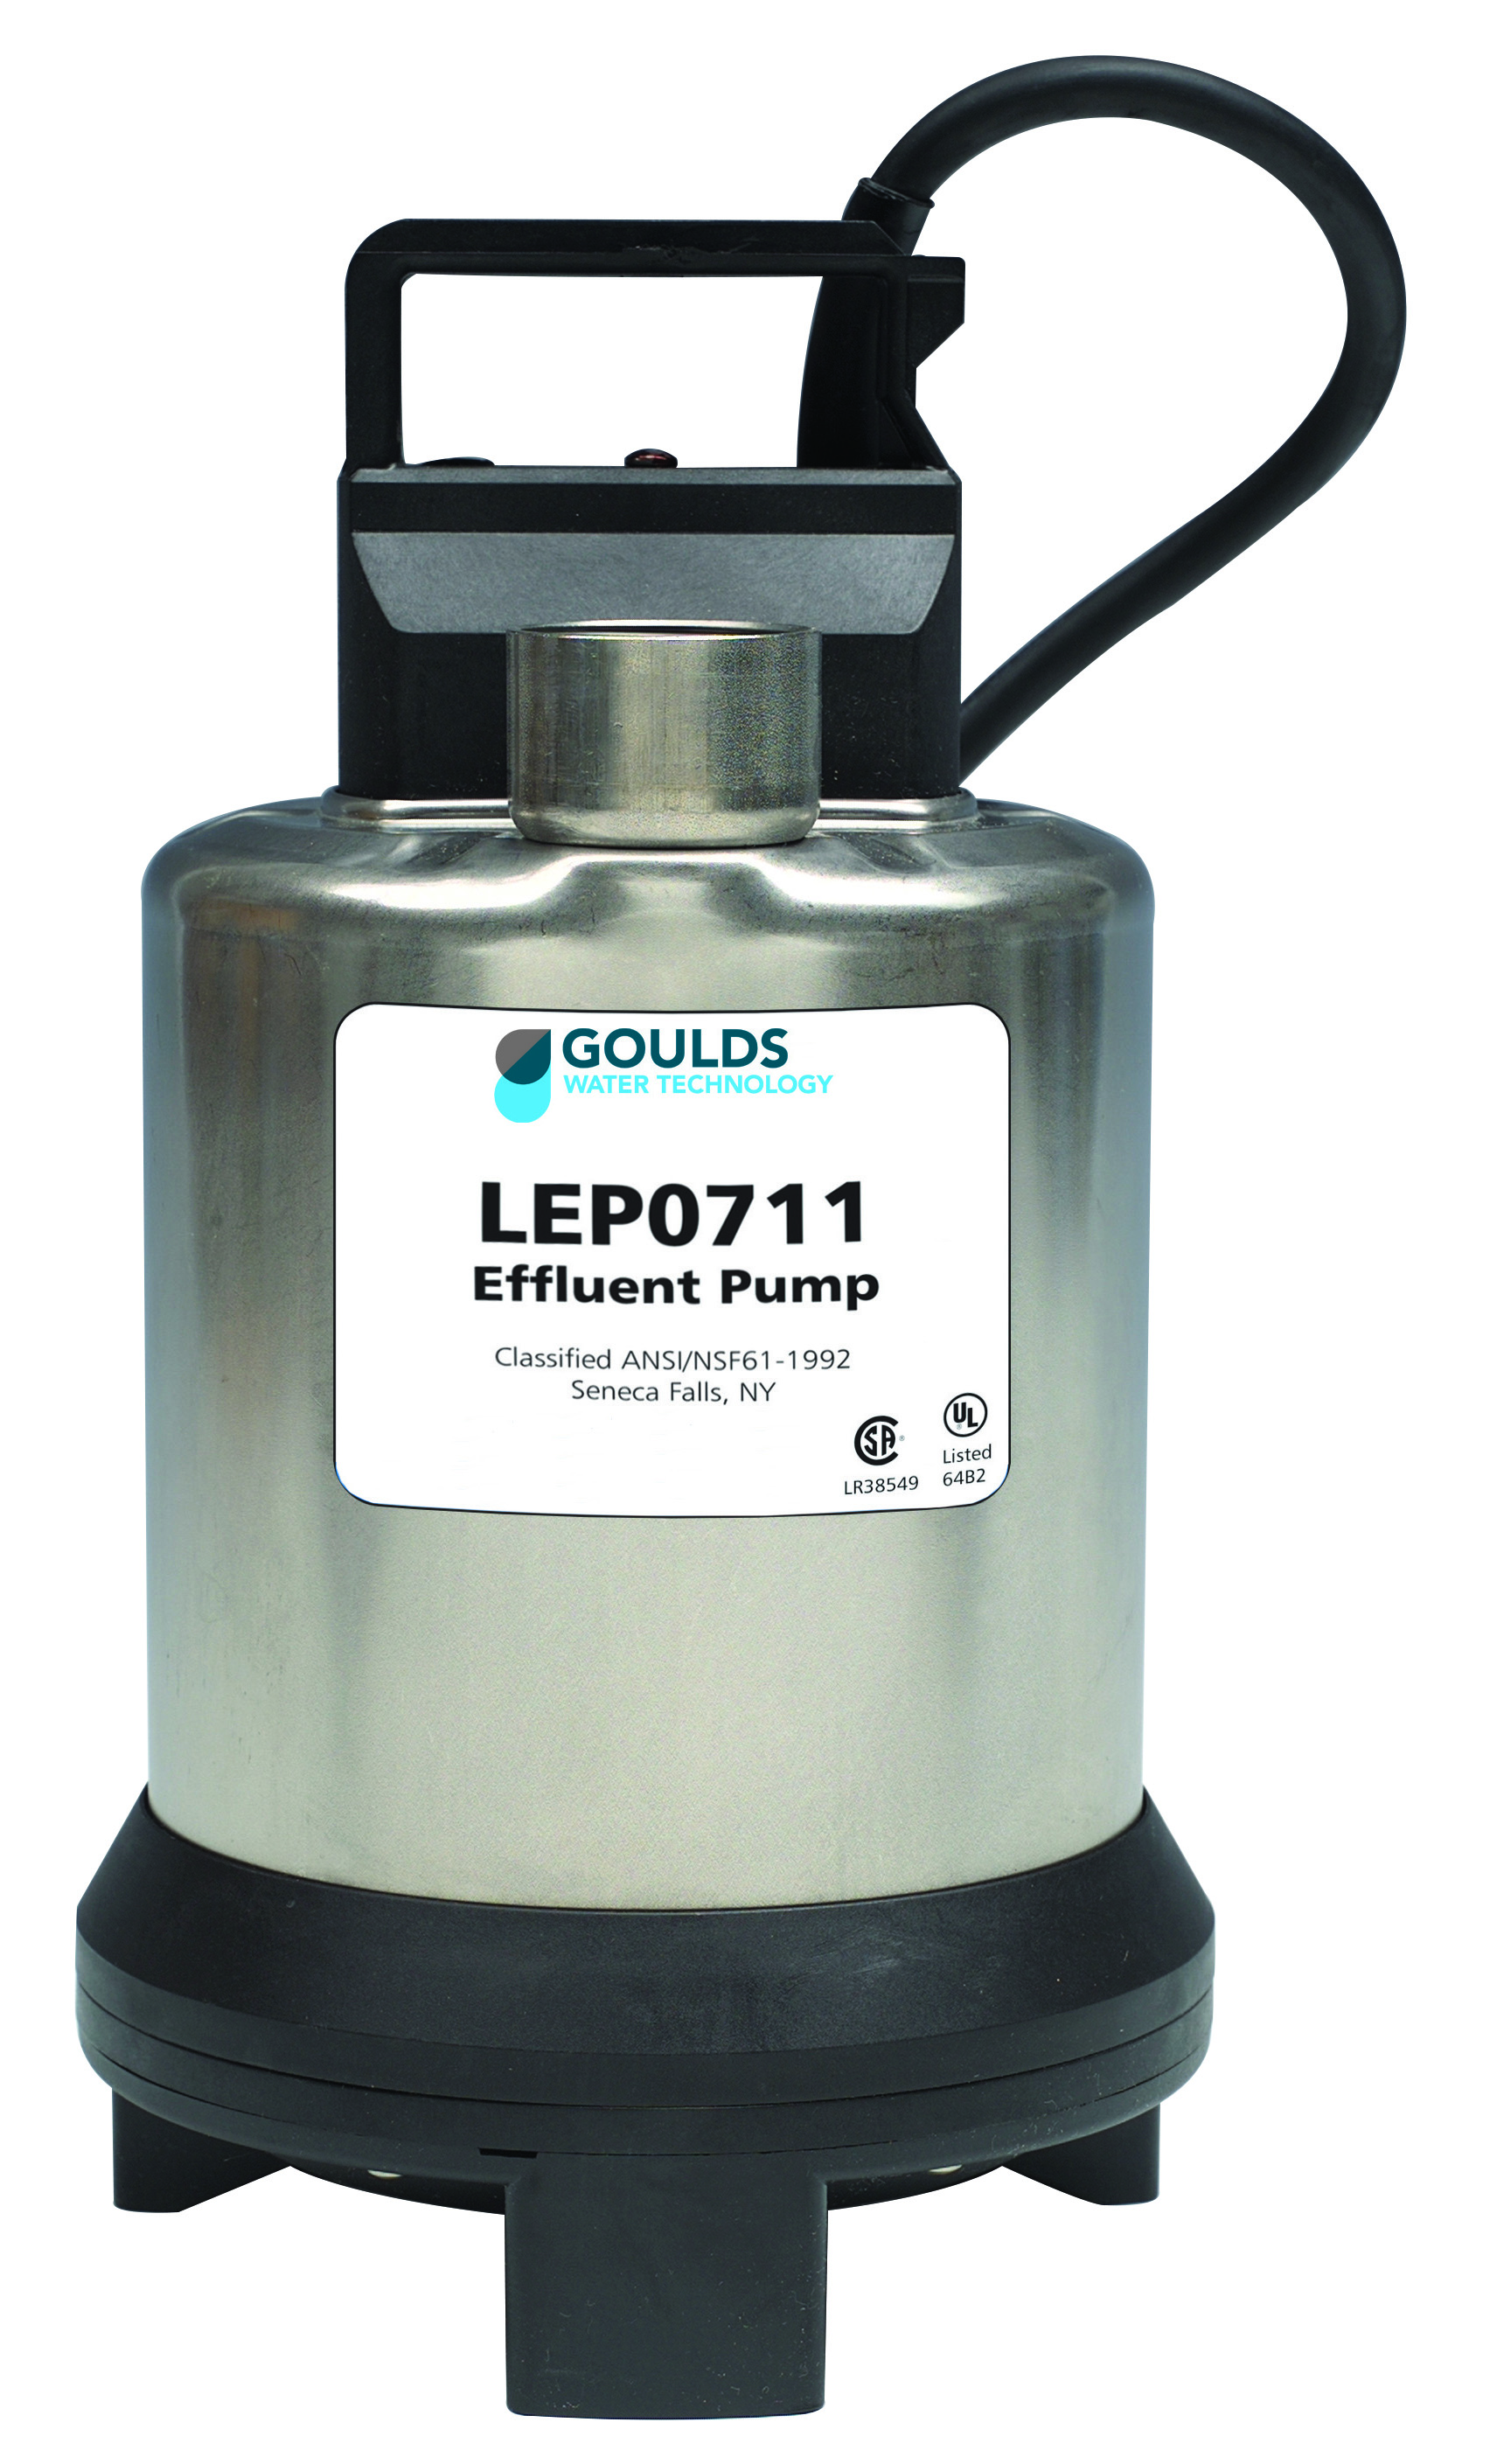 LEP07 – Submersible Effluent Pumps